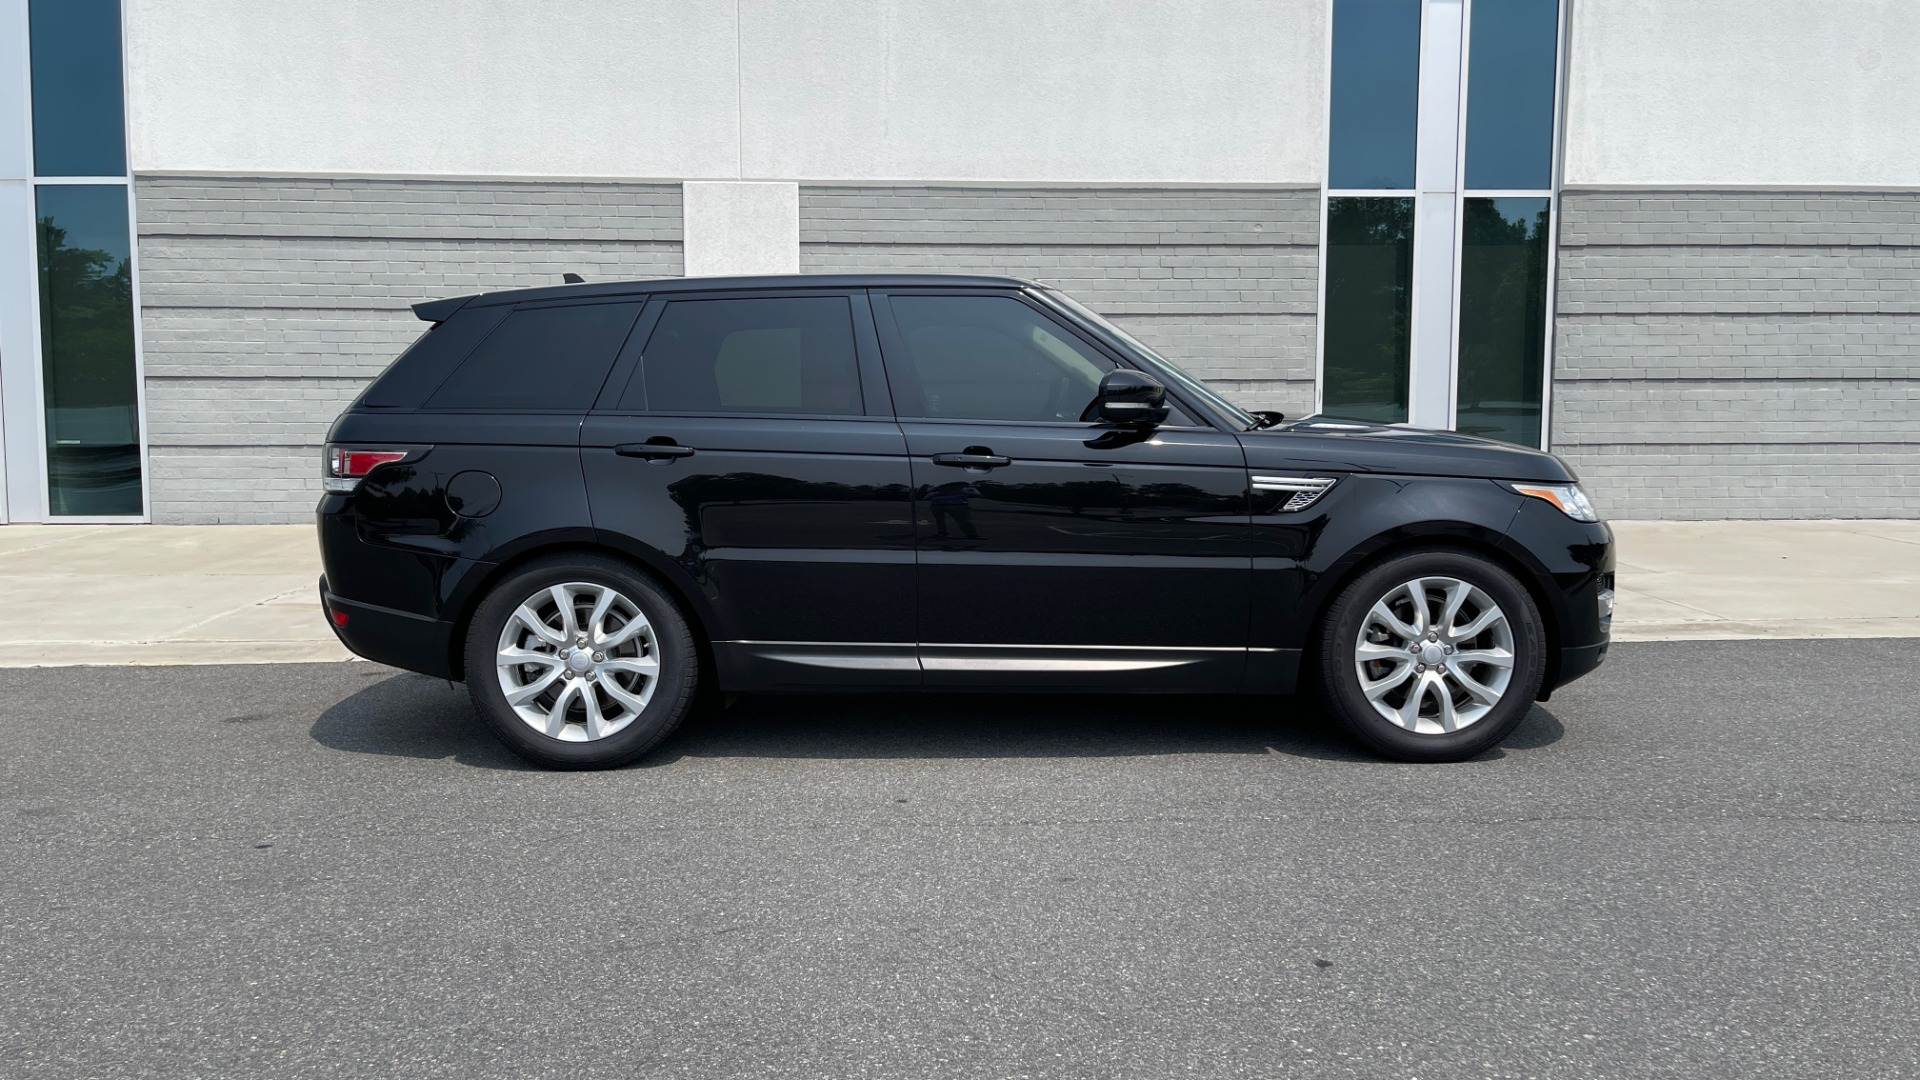 Used 2016 Land Rover RANGE ROVER SPORT V6 HSE / NAV / PANO-ROOF / MERIDIAN / CONSOLE COOLER / CAMERAS for sale $40,995 at Formula Imports in Charlotte NC 28227 6